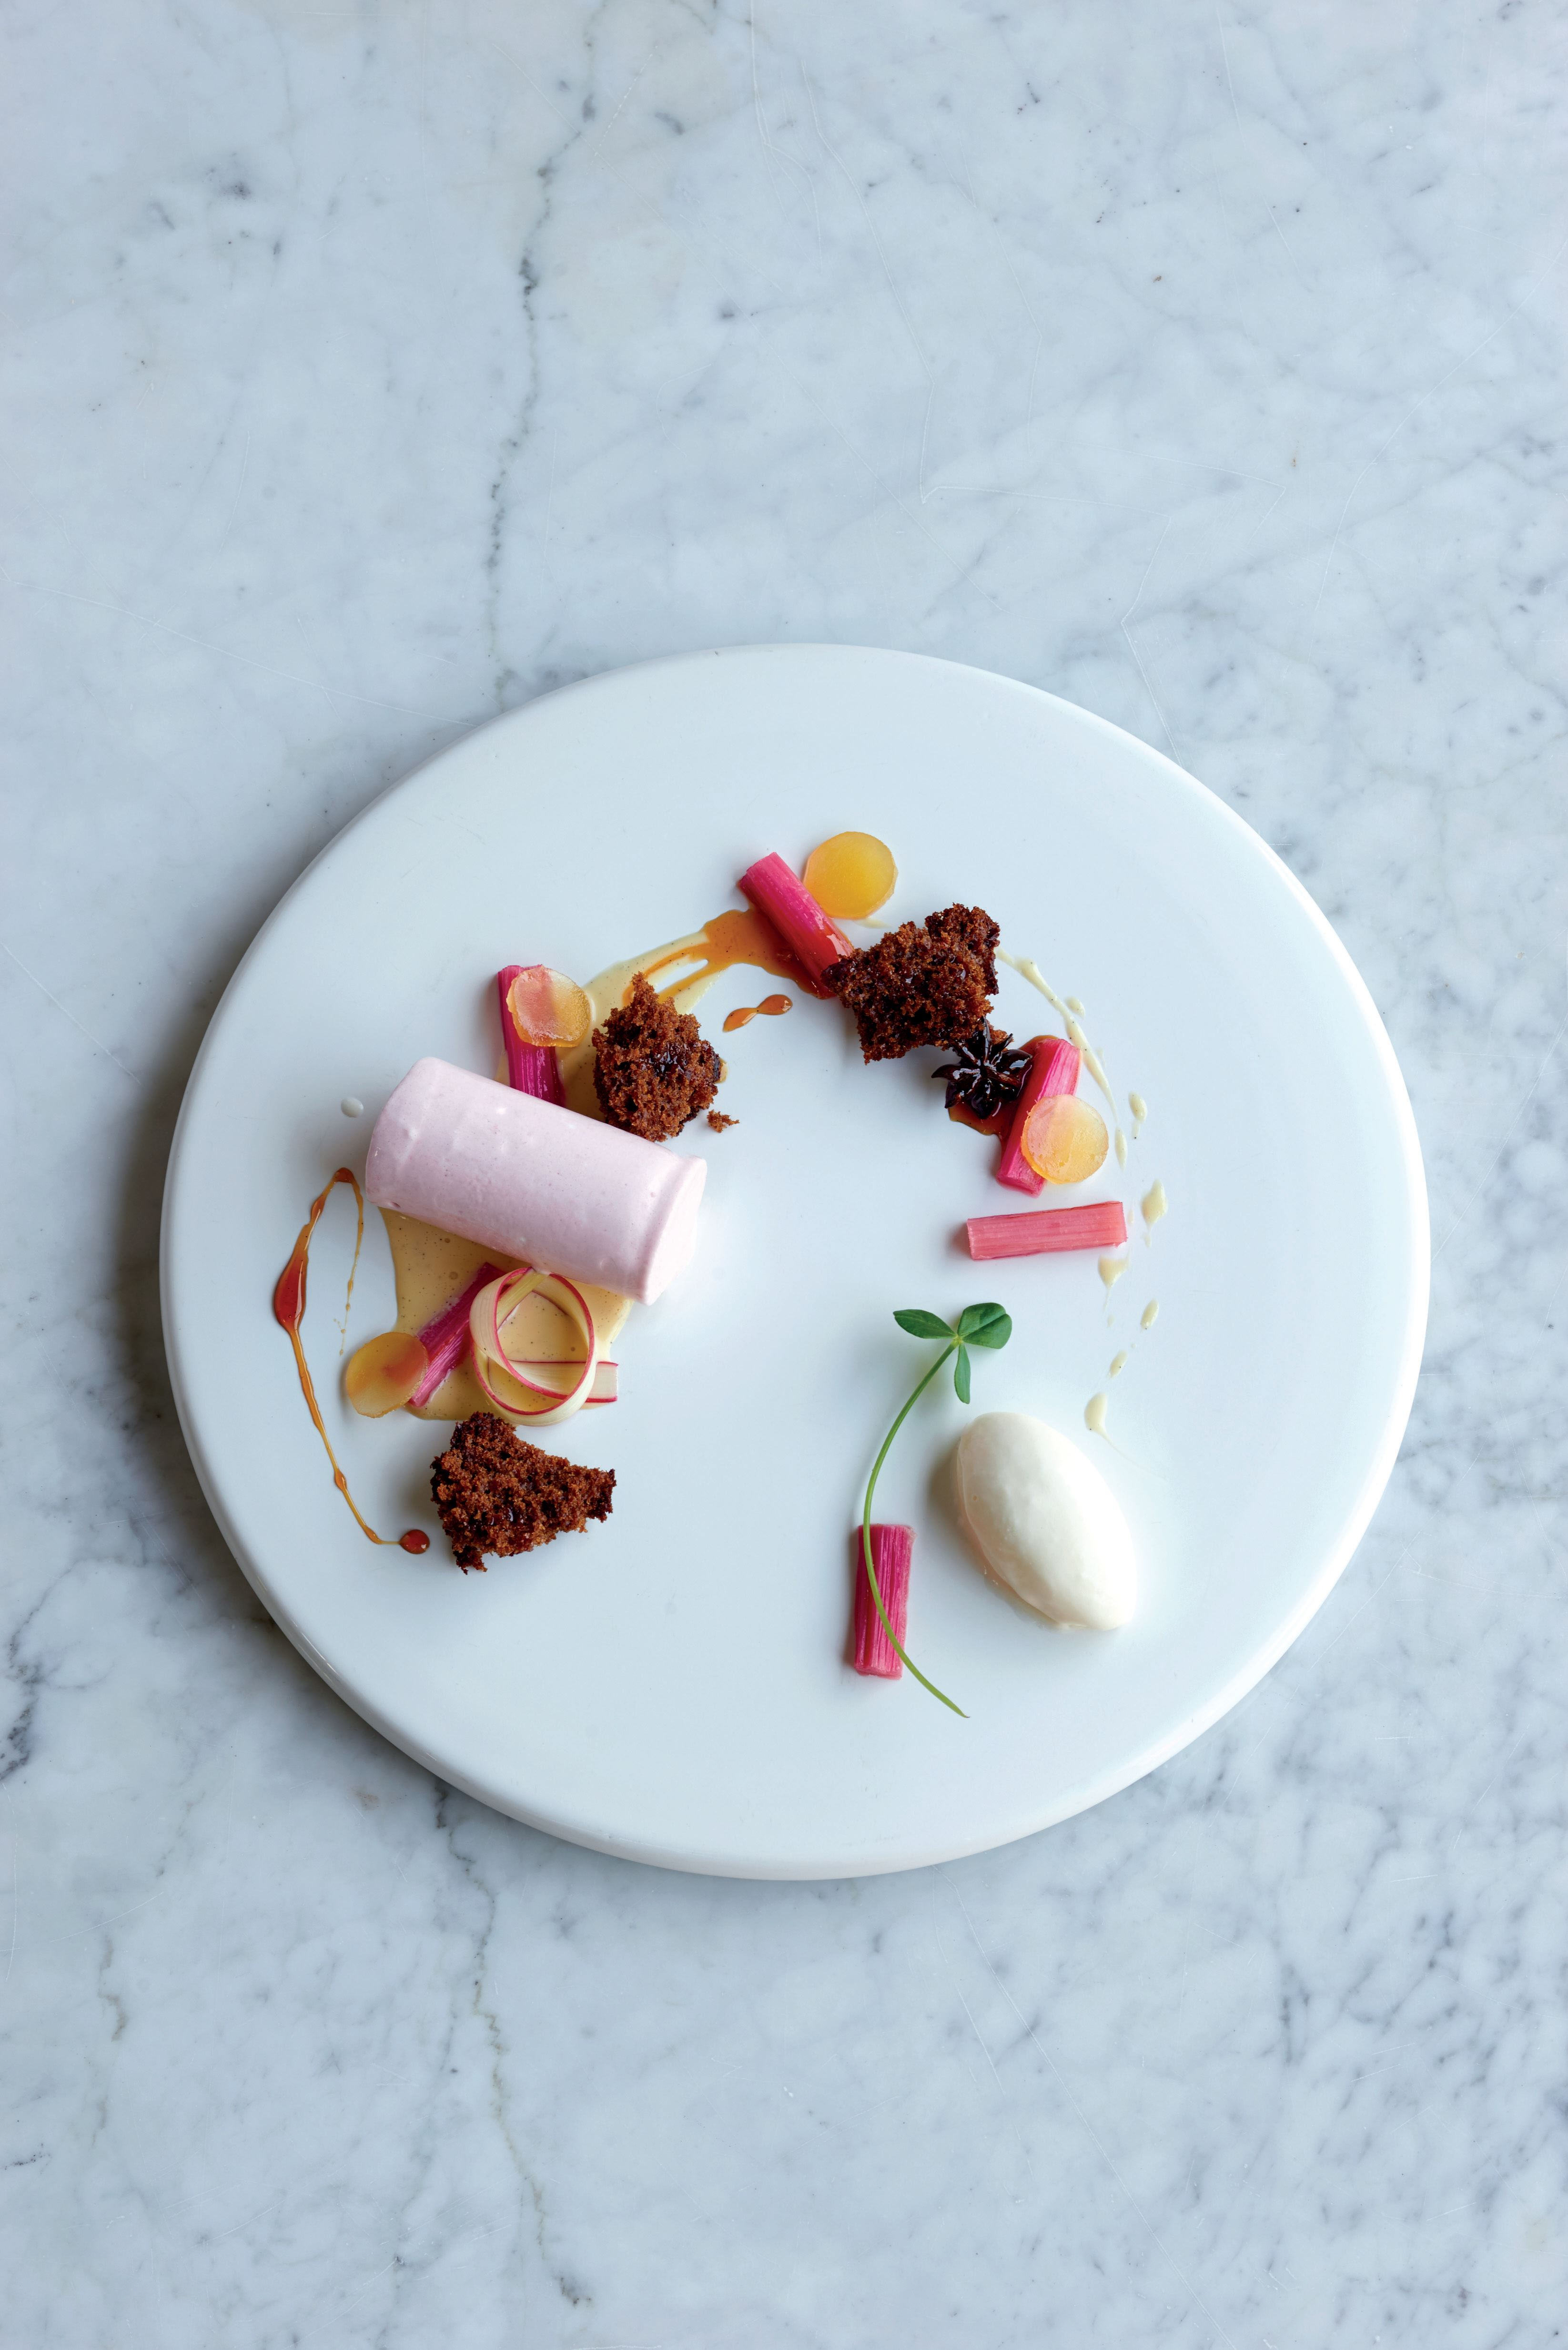 Iced rhubarb mousse with ginger cake, star anise and crème fraîche sorbet